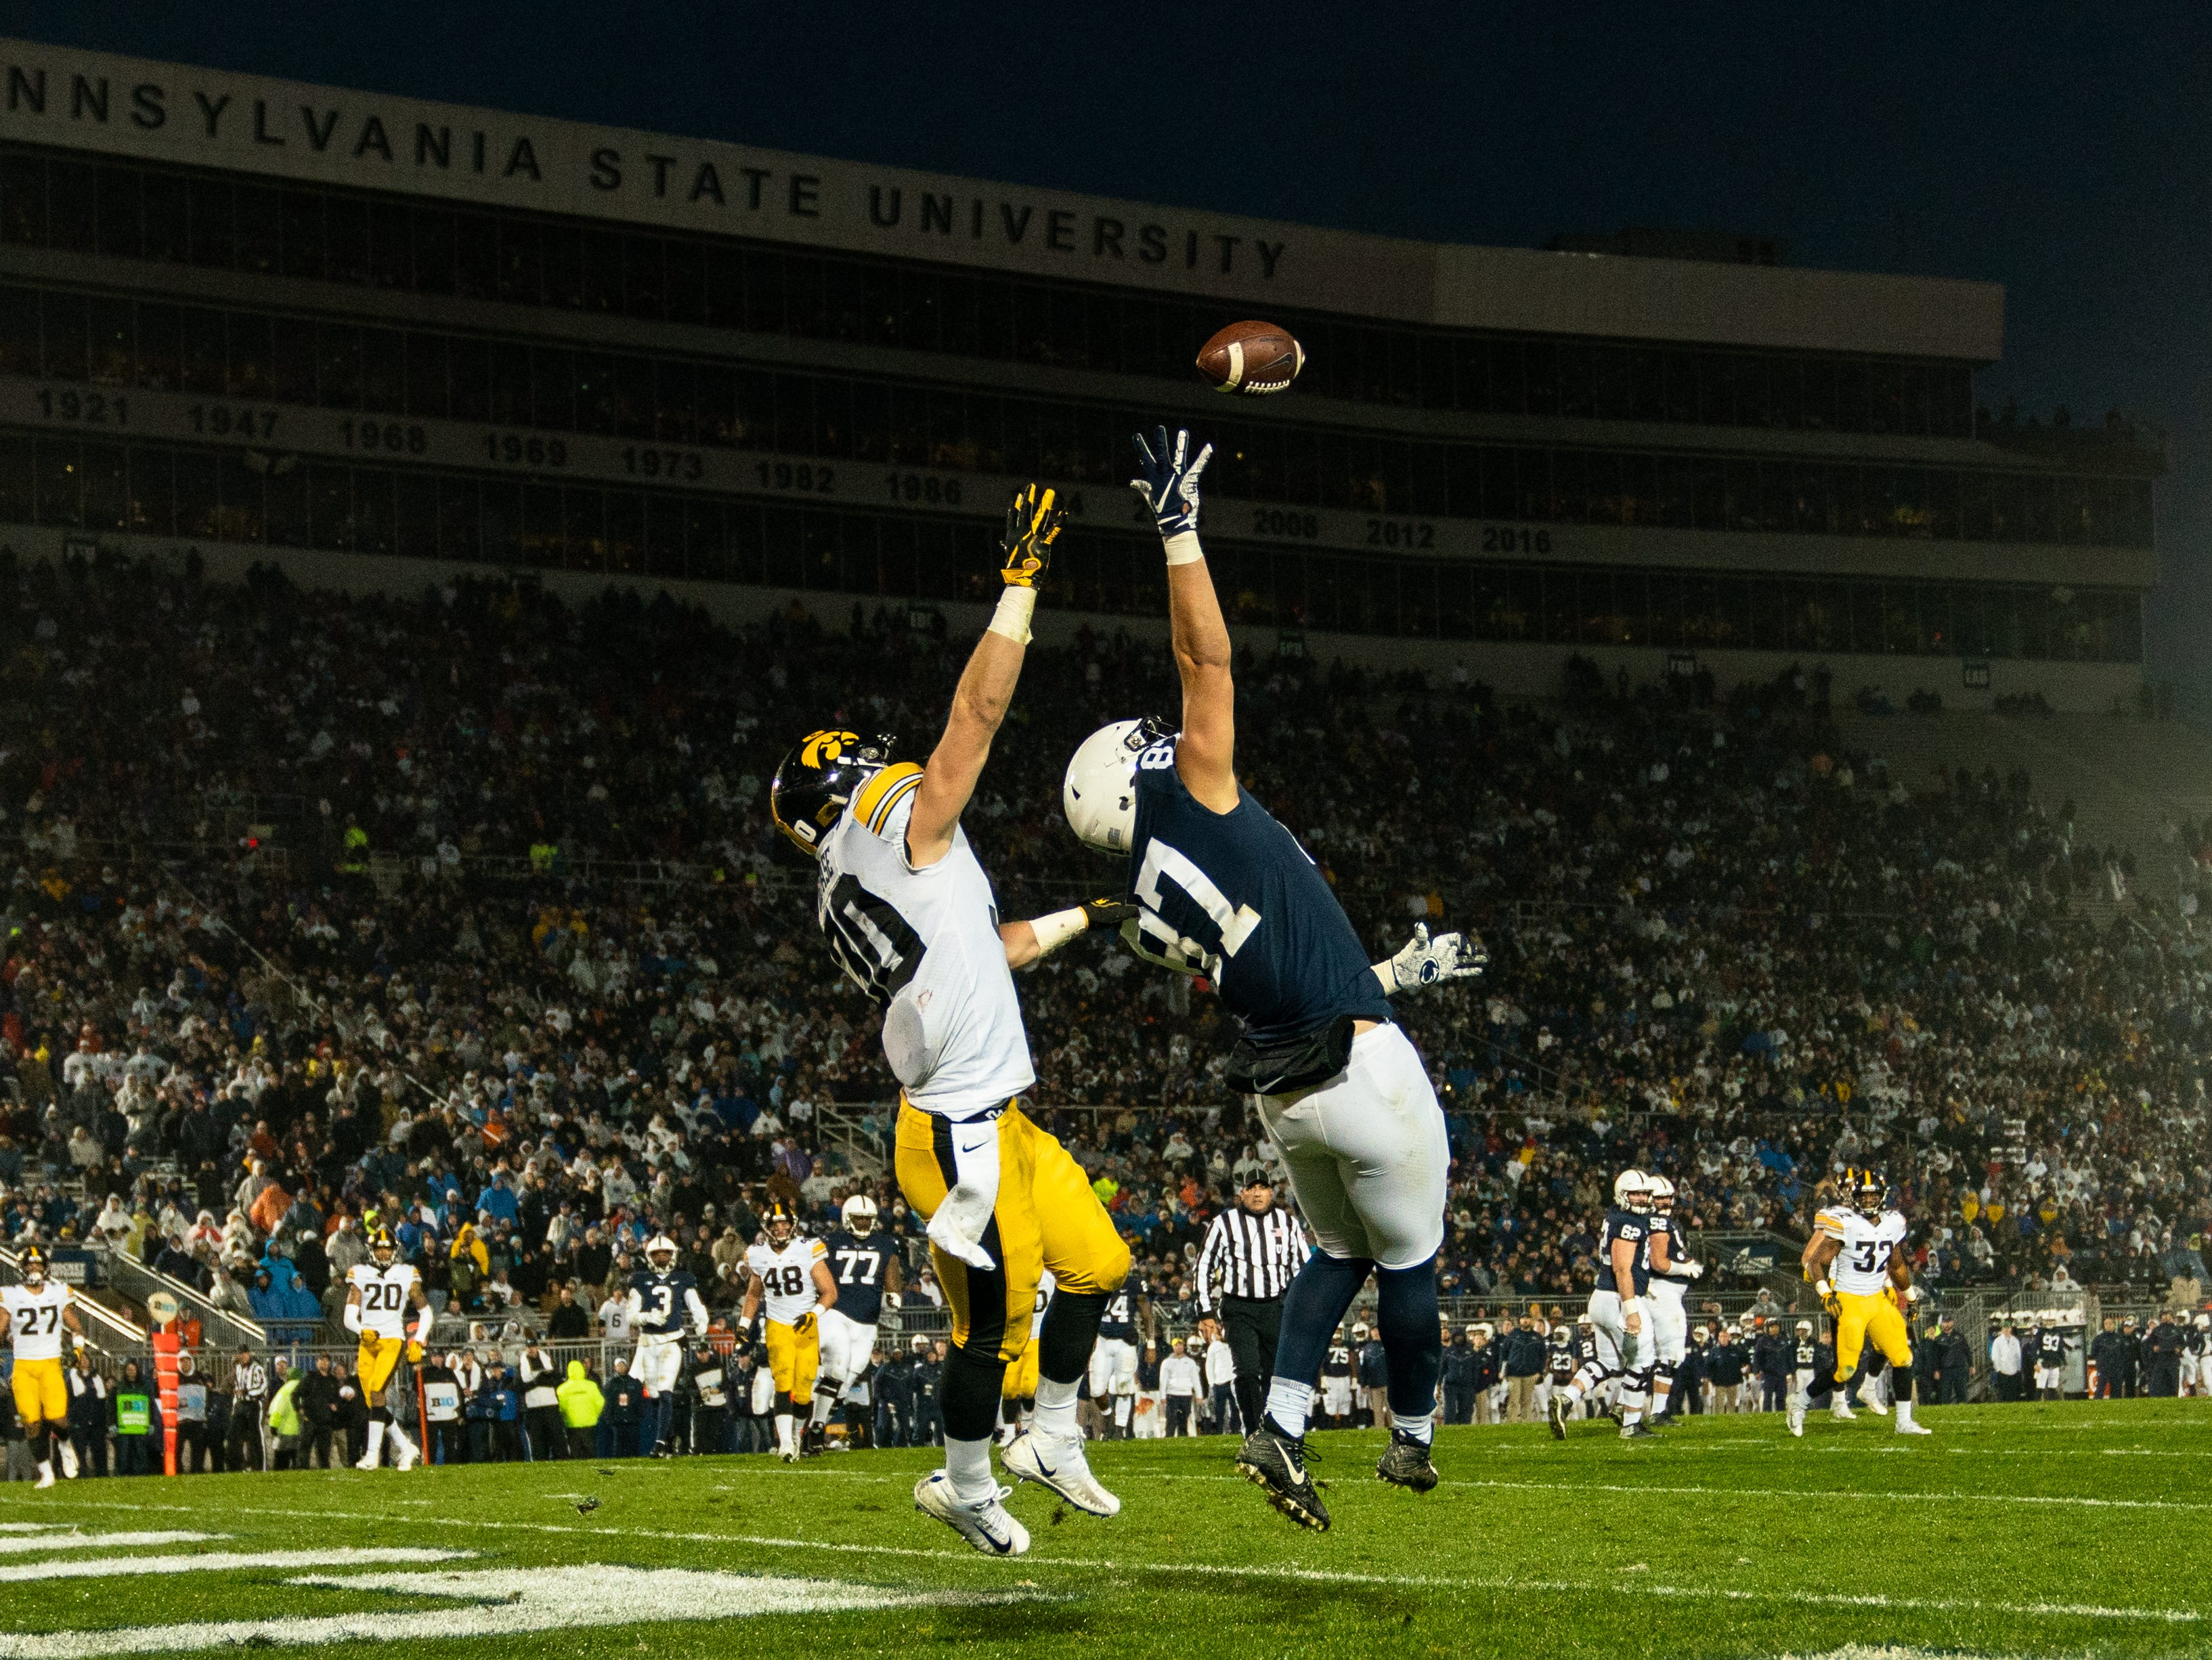 Pat Freiermuth #87 of the Penn State Nittany Lions and Jake Gervase #30 of the Iowa Hawkeyes go up for a pass during a game at Beaver Stadium on Saturday, October 27, 2018, in State College, Pennsylvania.